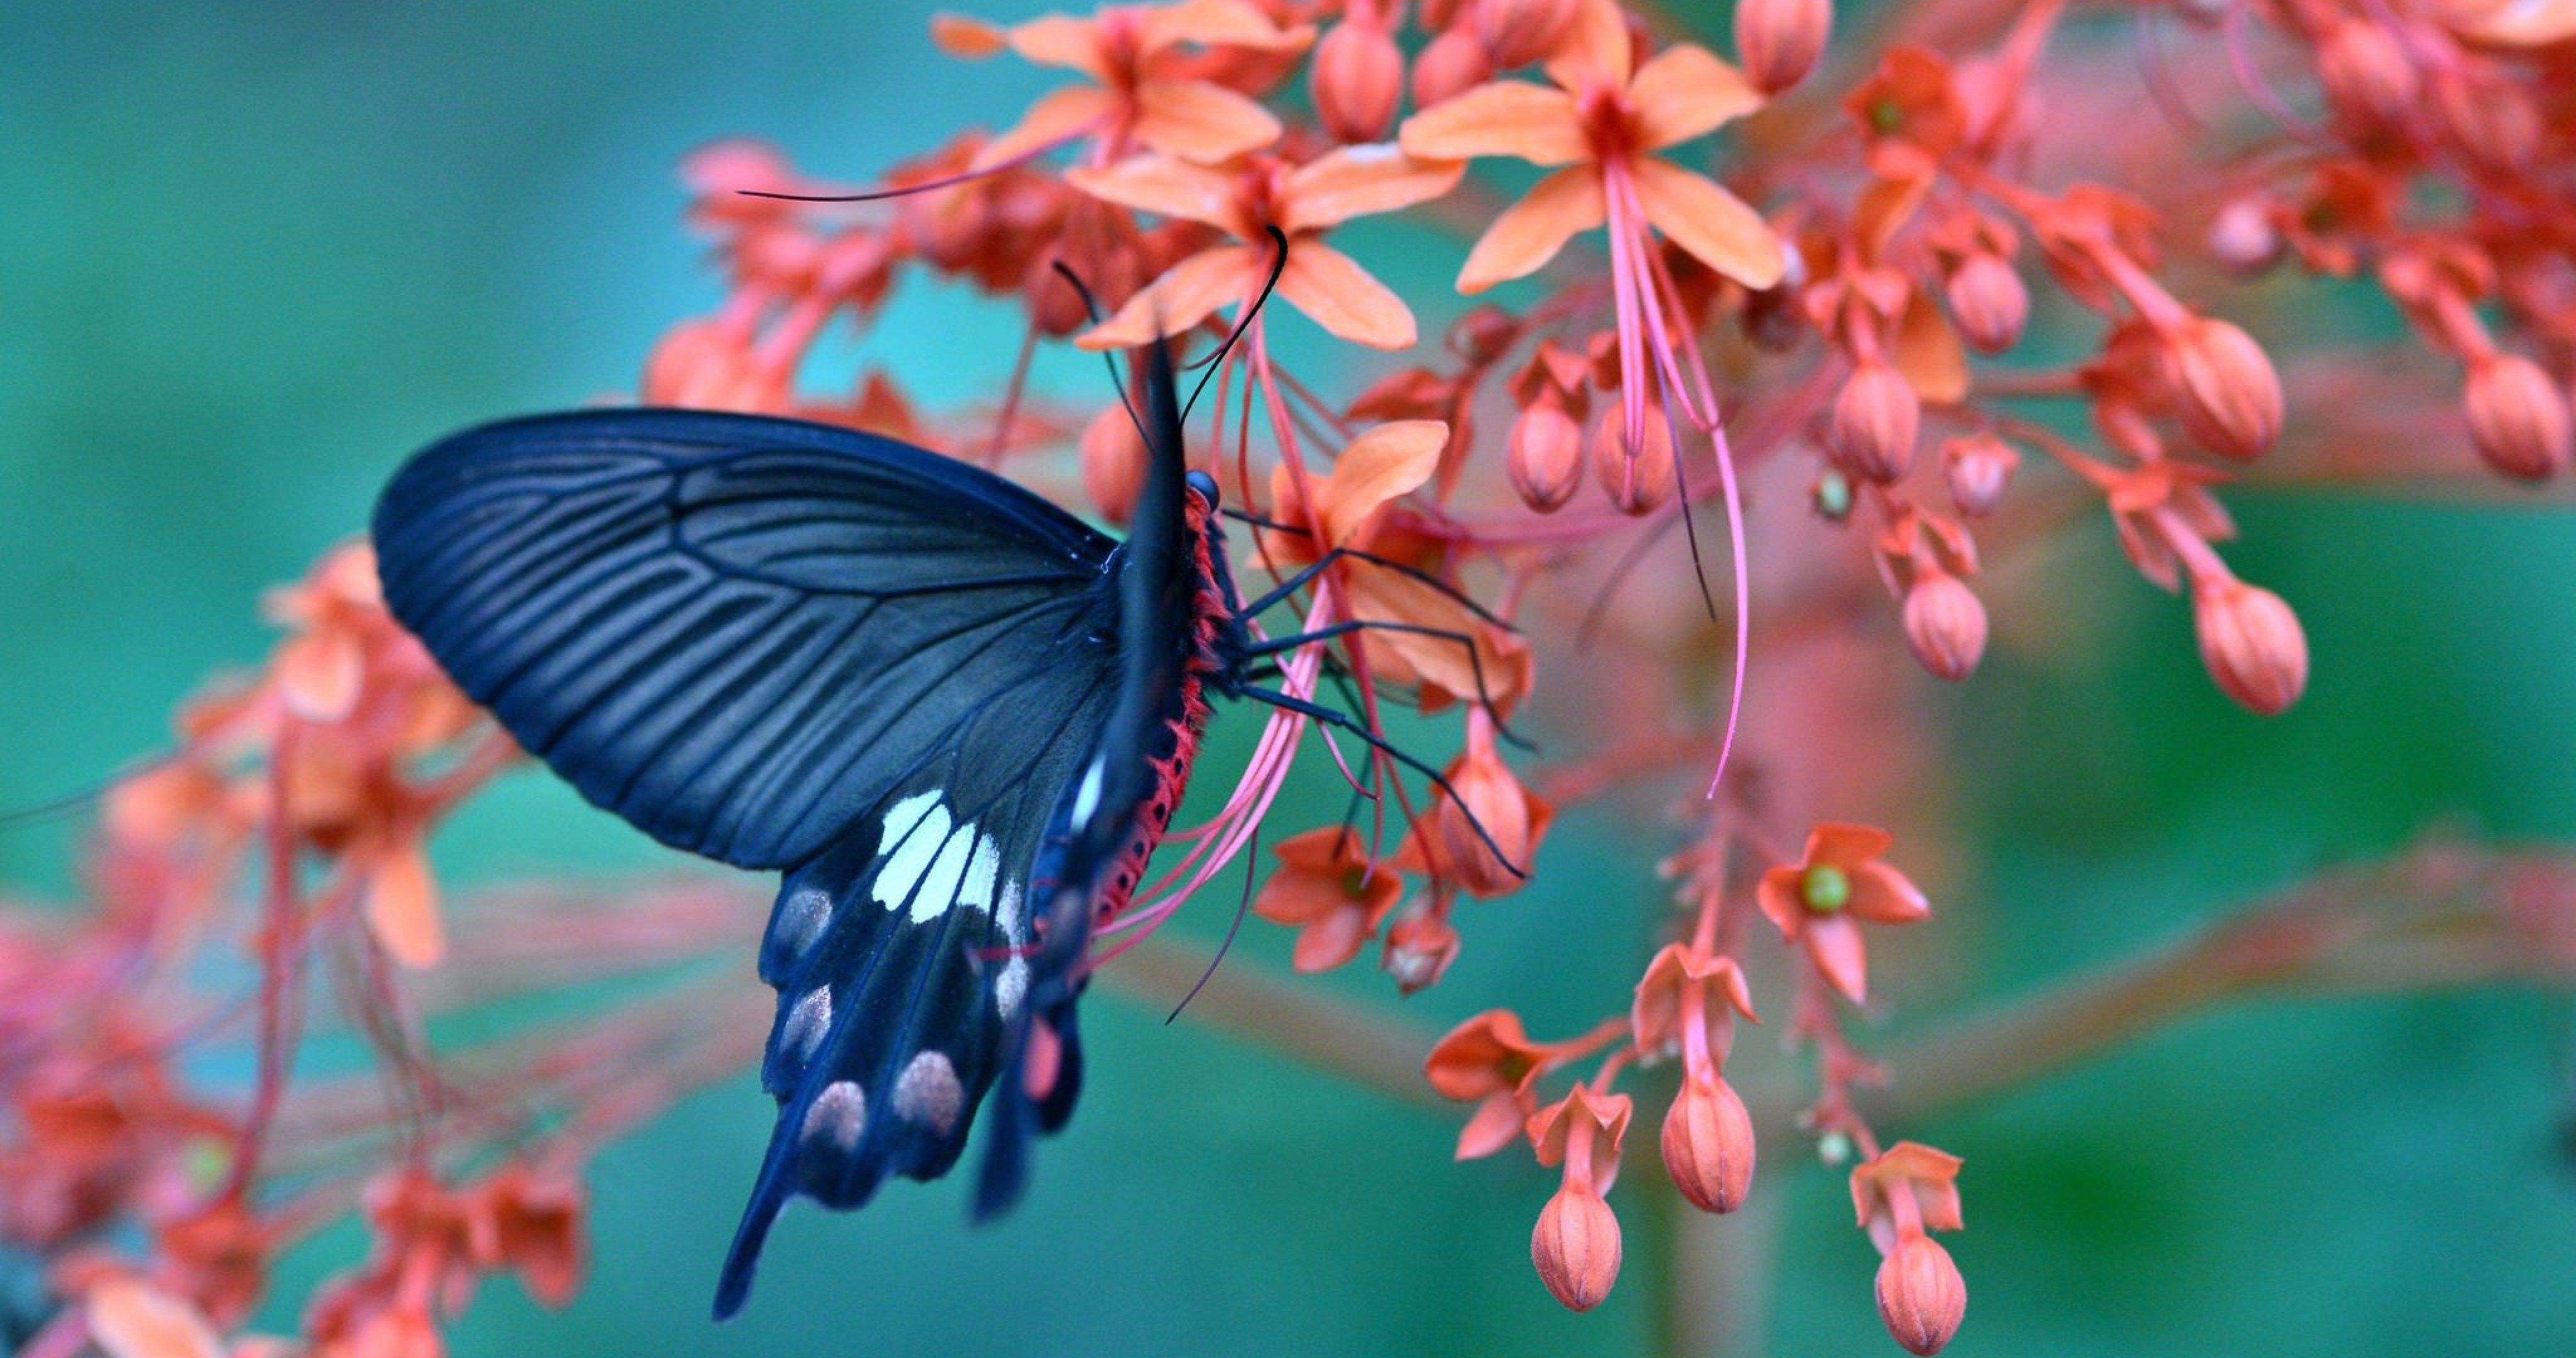 Wallpapers Hd Butterfly Wallpaper Cave